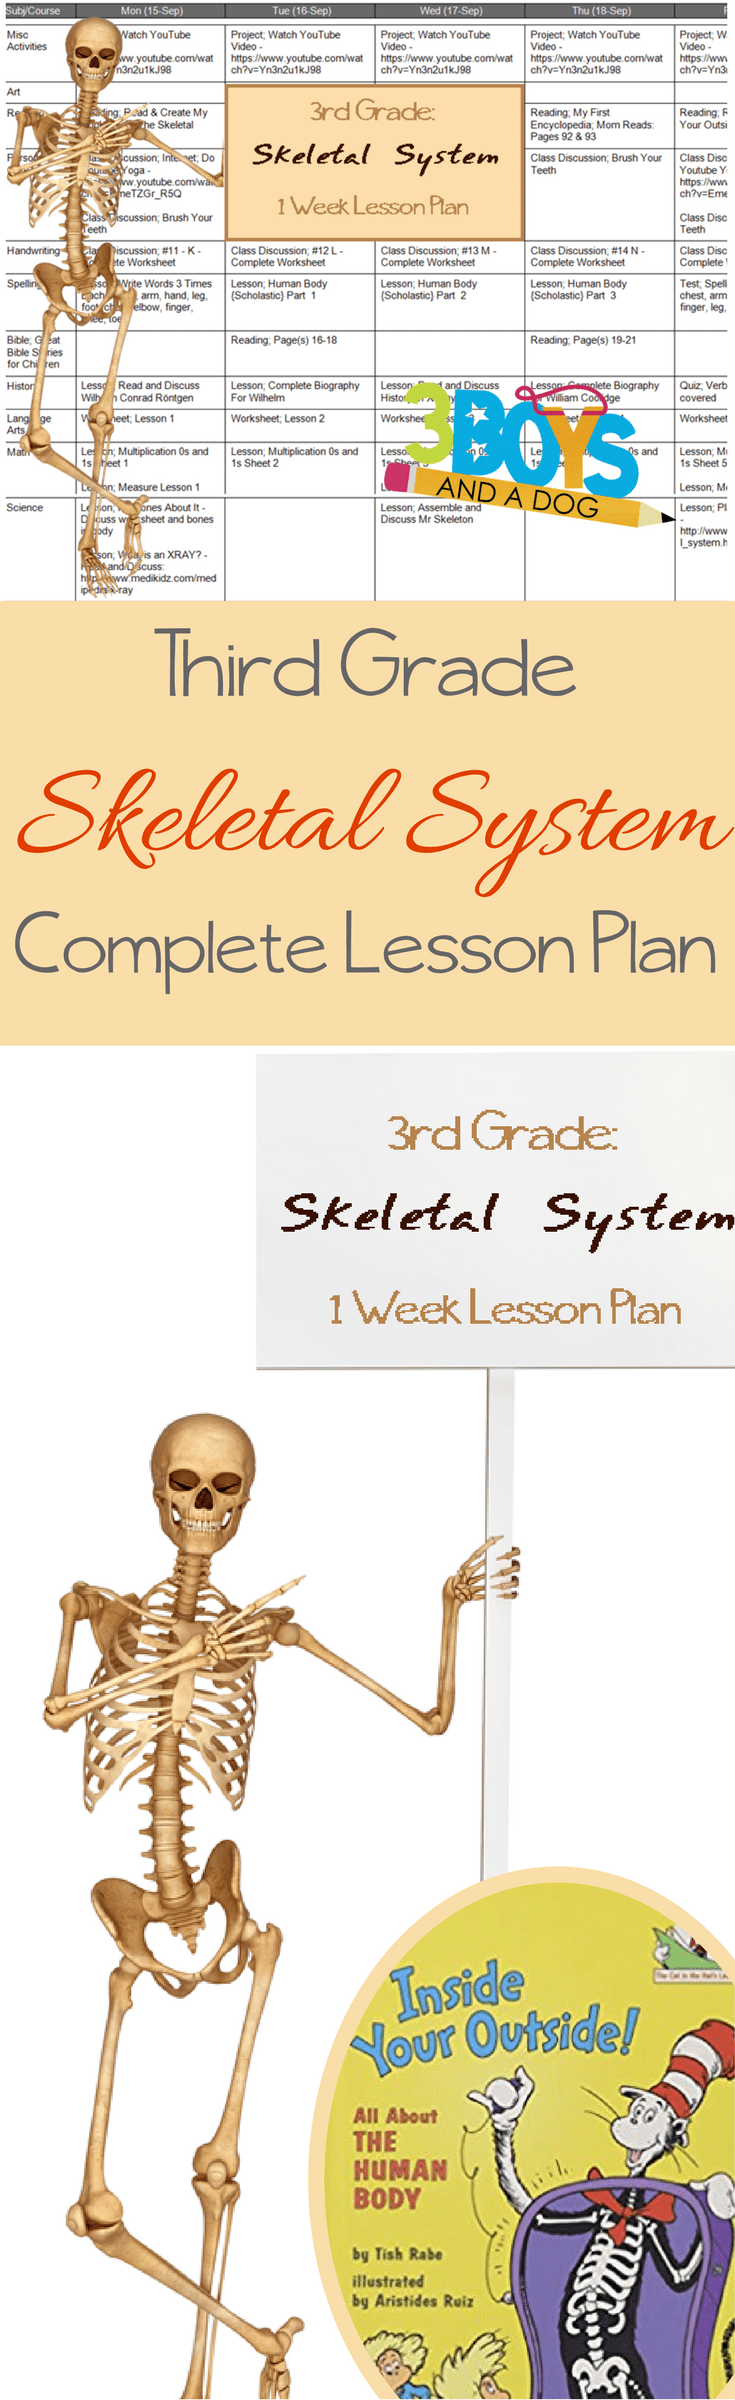 Skeletal System Activities Body Skeletal System Lesson in addition Skeleton Diagram     Pinterest   Science worksheets  Science also 3rd Grade Skeletal System Worksheets as well Skeletal System Worksheets for Kids besides Summary  > Skeletal System Lessons Worksheets And Activities in addition  additionally Label the Skeleton Worksheet   Croefit also Muscular System Worksheets 3rd Grade Body Muscles Activity besides 3rd grade body worksheets – yorkvillecentre as well Body Activities Digestive System Den Worksheets Worksheet 3rd furthermore 3rd Grade Skeletal System Worksheets   The Best and Most further Skeletal System Coloring Pages Stylish 3rd Grade Science Worksheets as well  in addition Muscular System Worksheets 3rd Grade Body Muscles Activity as well  together with Skeletal System Worksheet 1 Science Body Resources 3rd Grade. on 3rd grade skeletal system worksheets